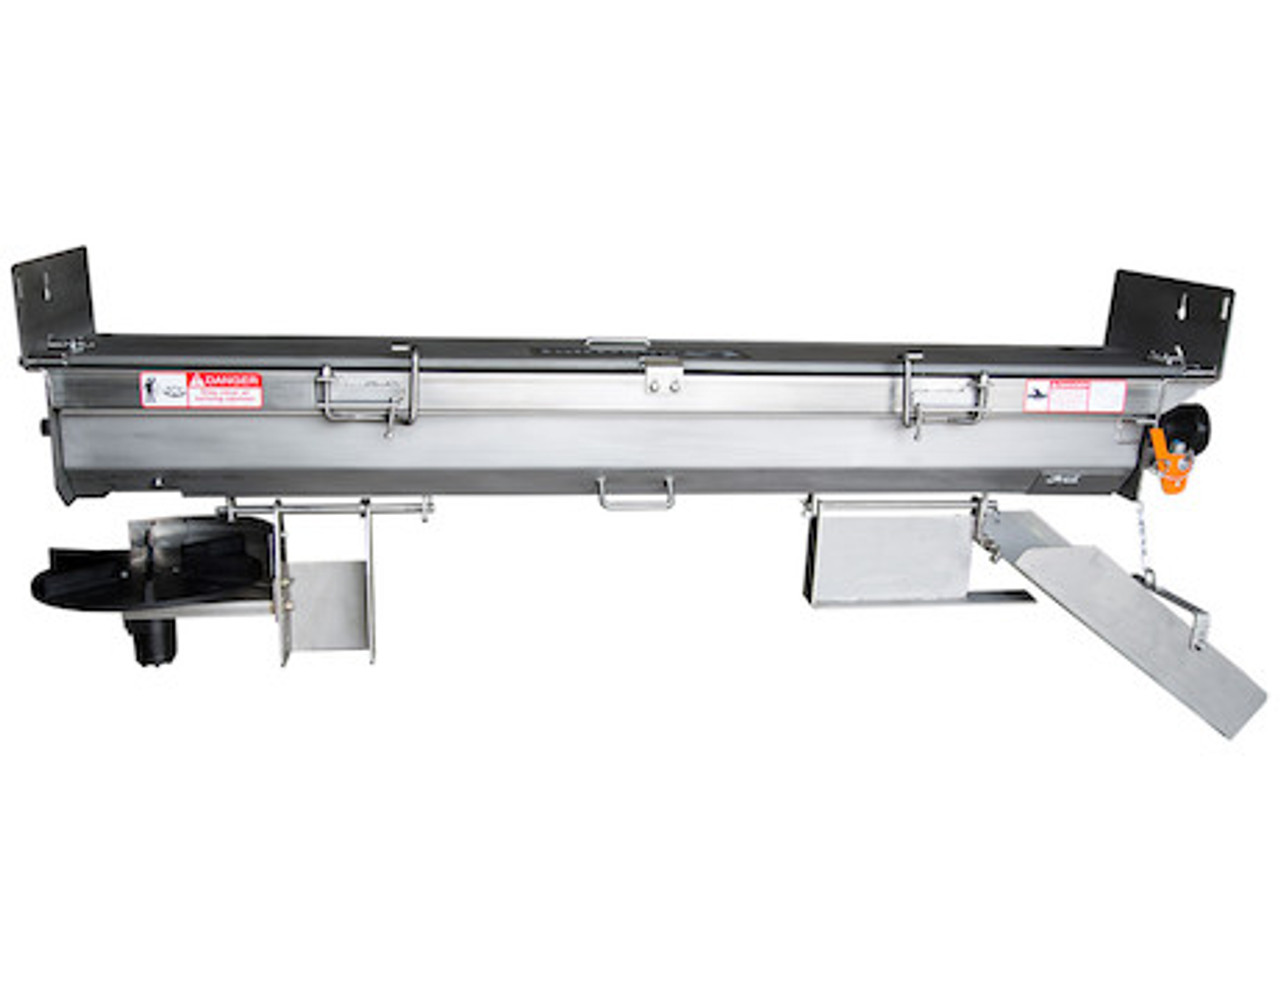 92452SSA BUYERS SALTDOGG STAINLESS STEEL HEAVY DUTY HYDRAULIC UNDER TAILGATE SALT SPREADER An optional berm chute (part #92451SS) is also available for passenger side discharge.